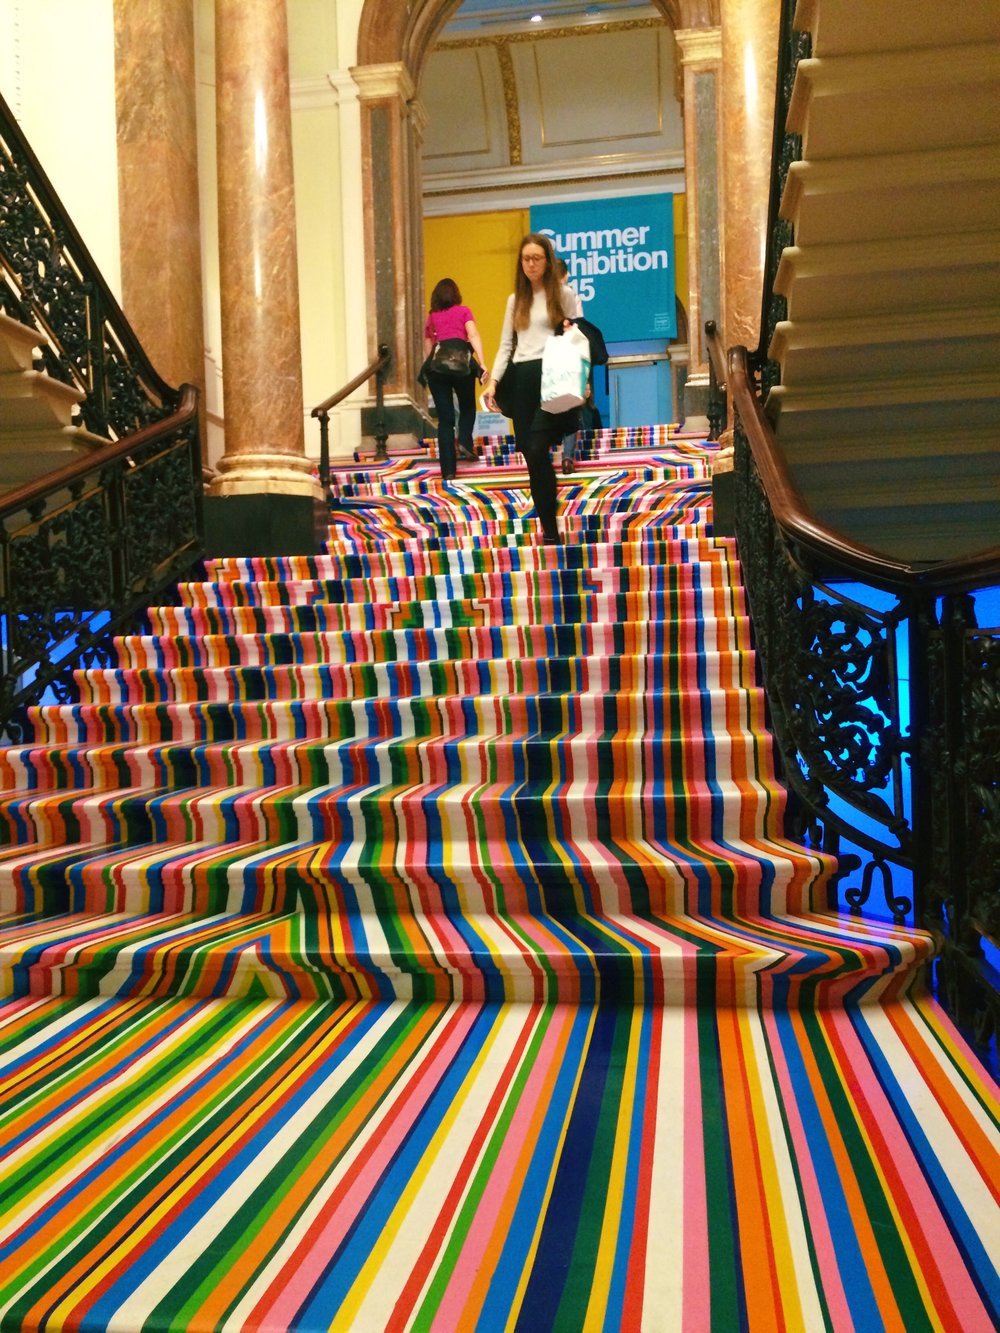 The Royal Academy of the Arts  throws late-night parties tied to their exhibitions. Paint throwing, supper clubs, and experimental cabaret are a few things you'll discover.